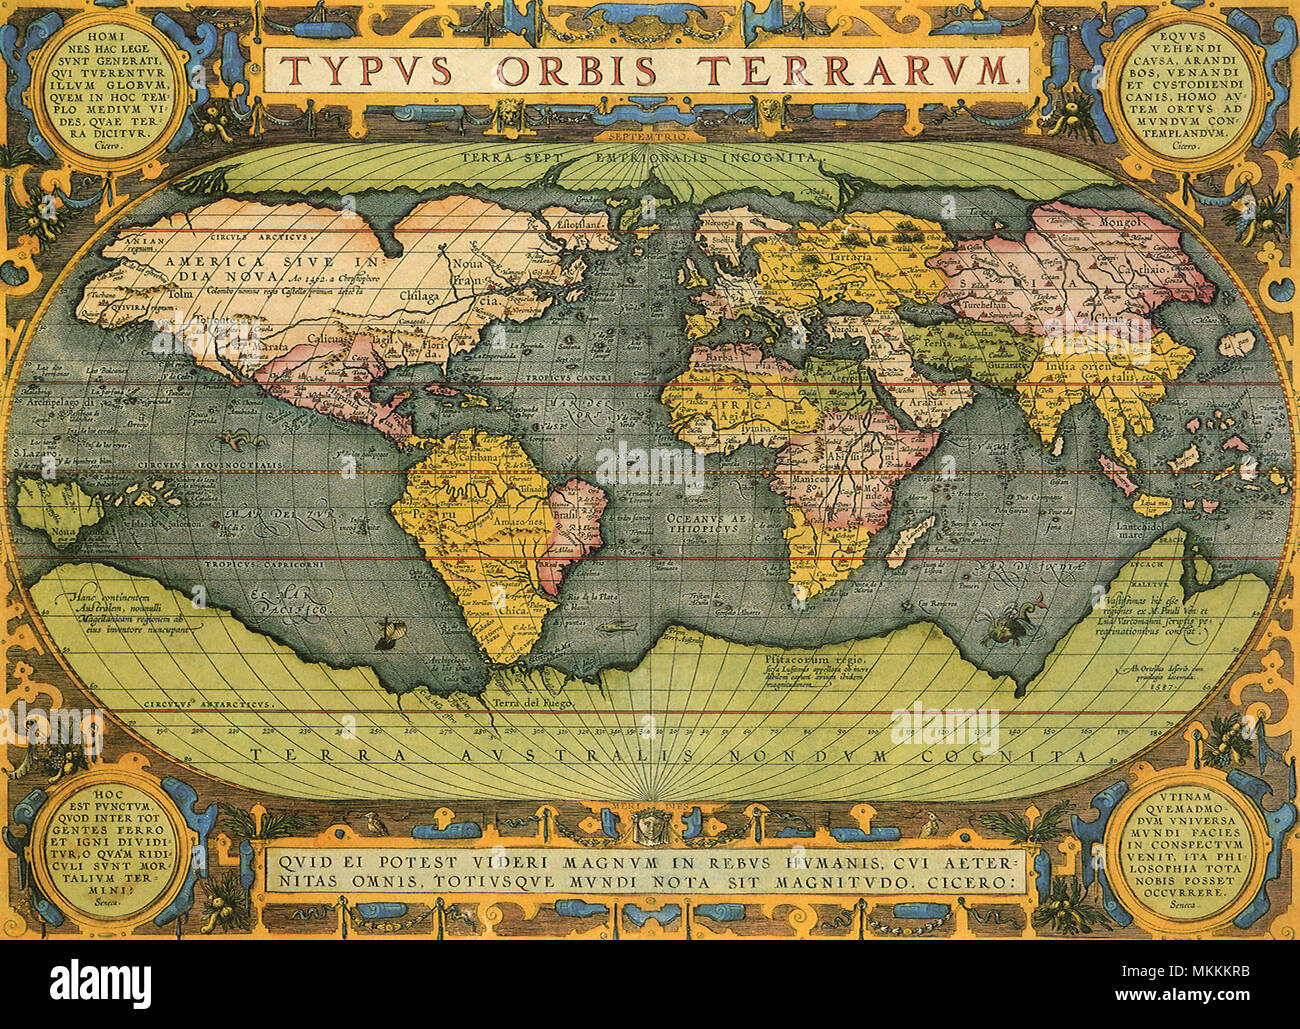 Oval world map 1598 stock photo 184214783 alamy oval world map 1598 gumiabroncs Gallery